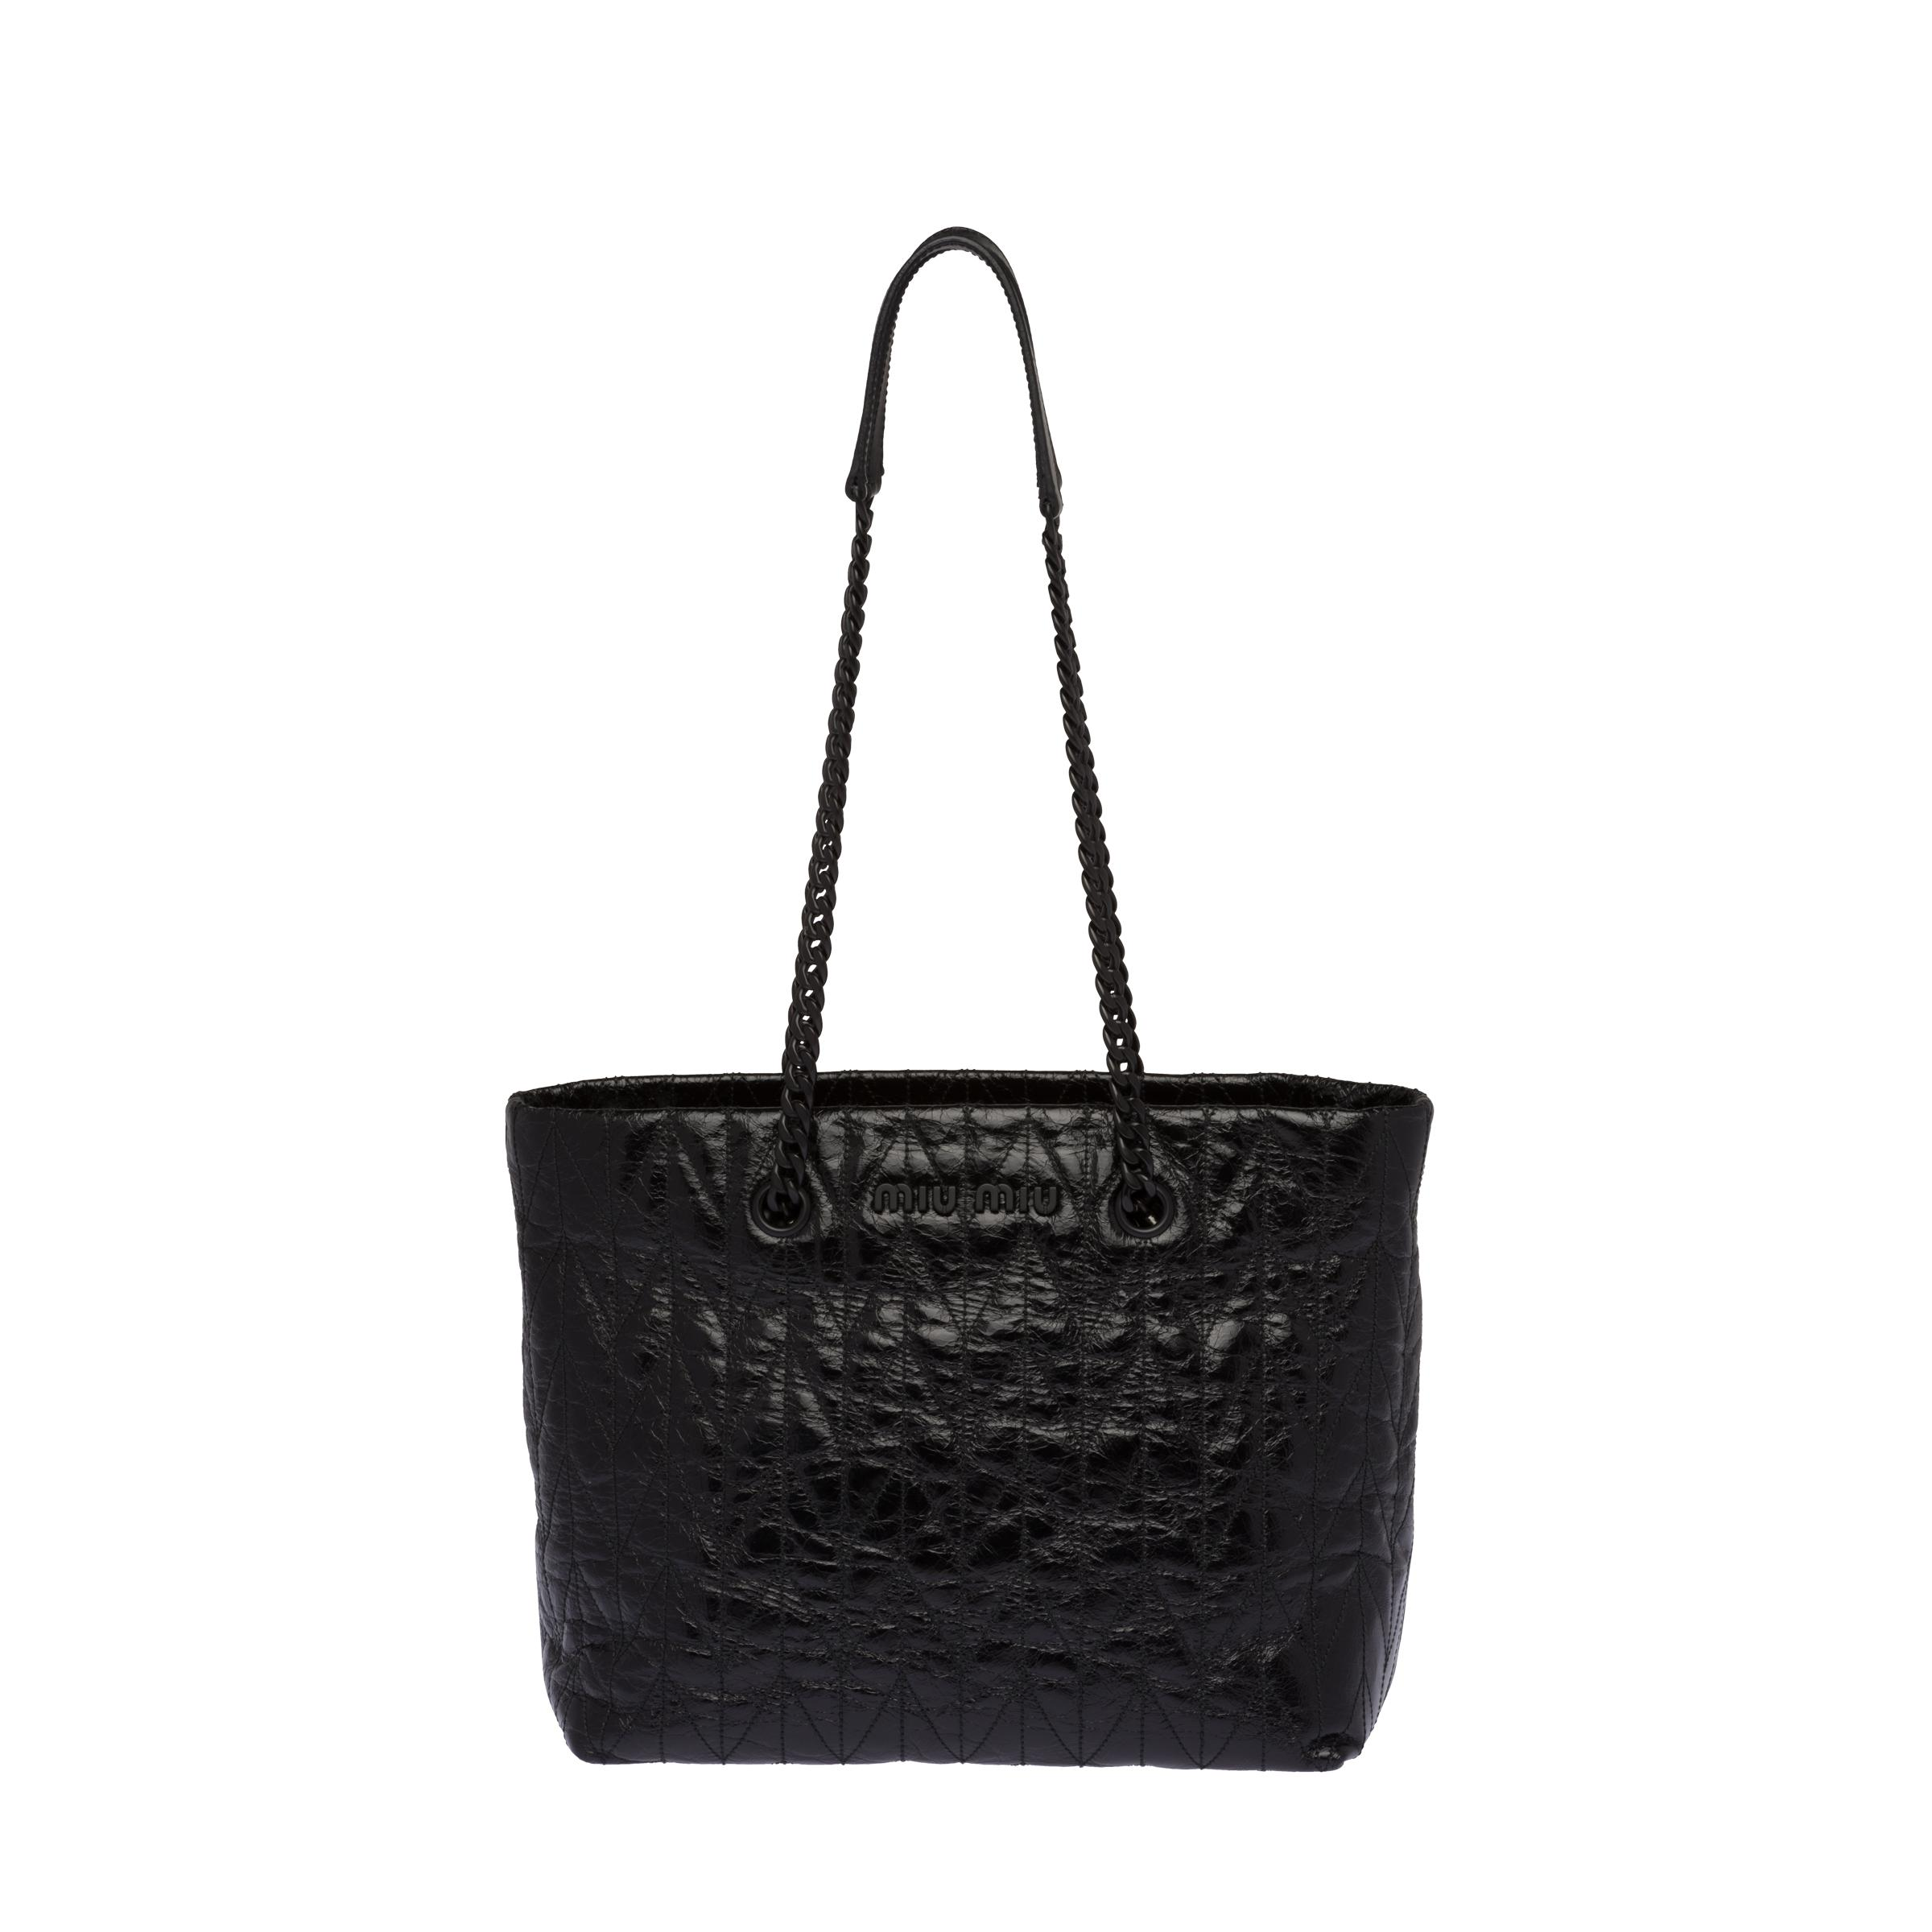 Quilted Shiny Leather Tote Bag Women Black